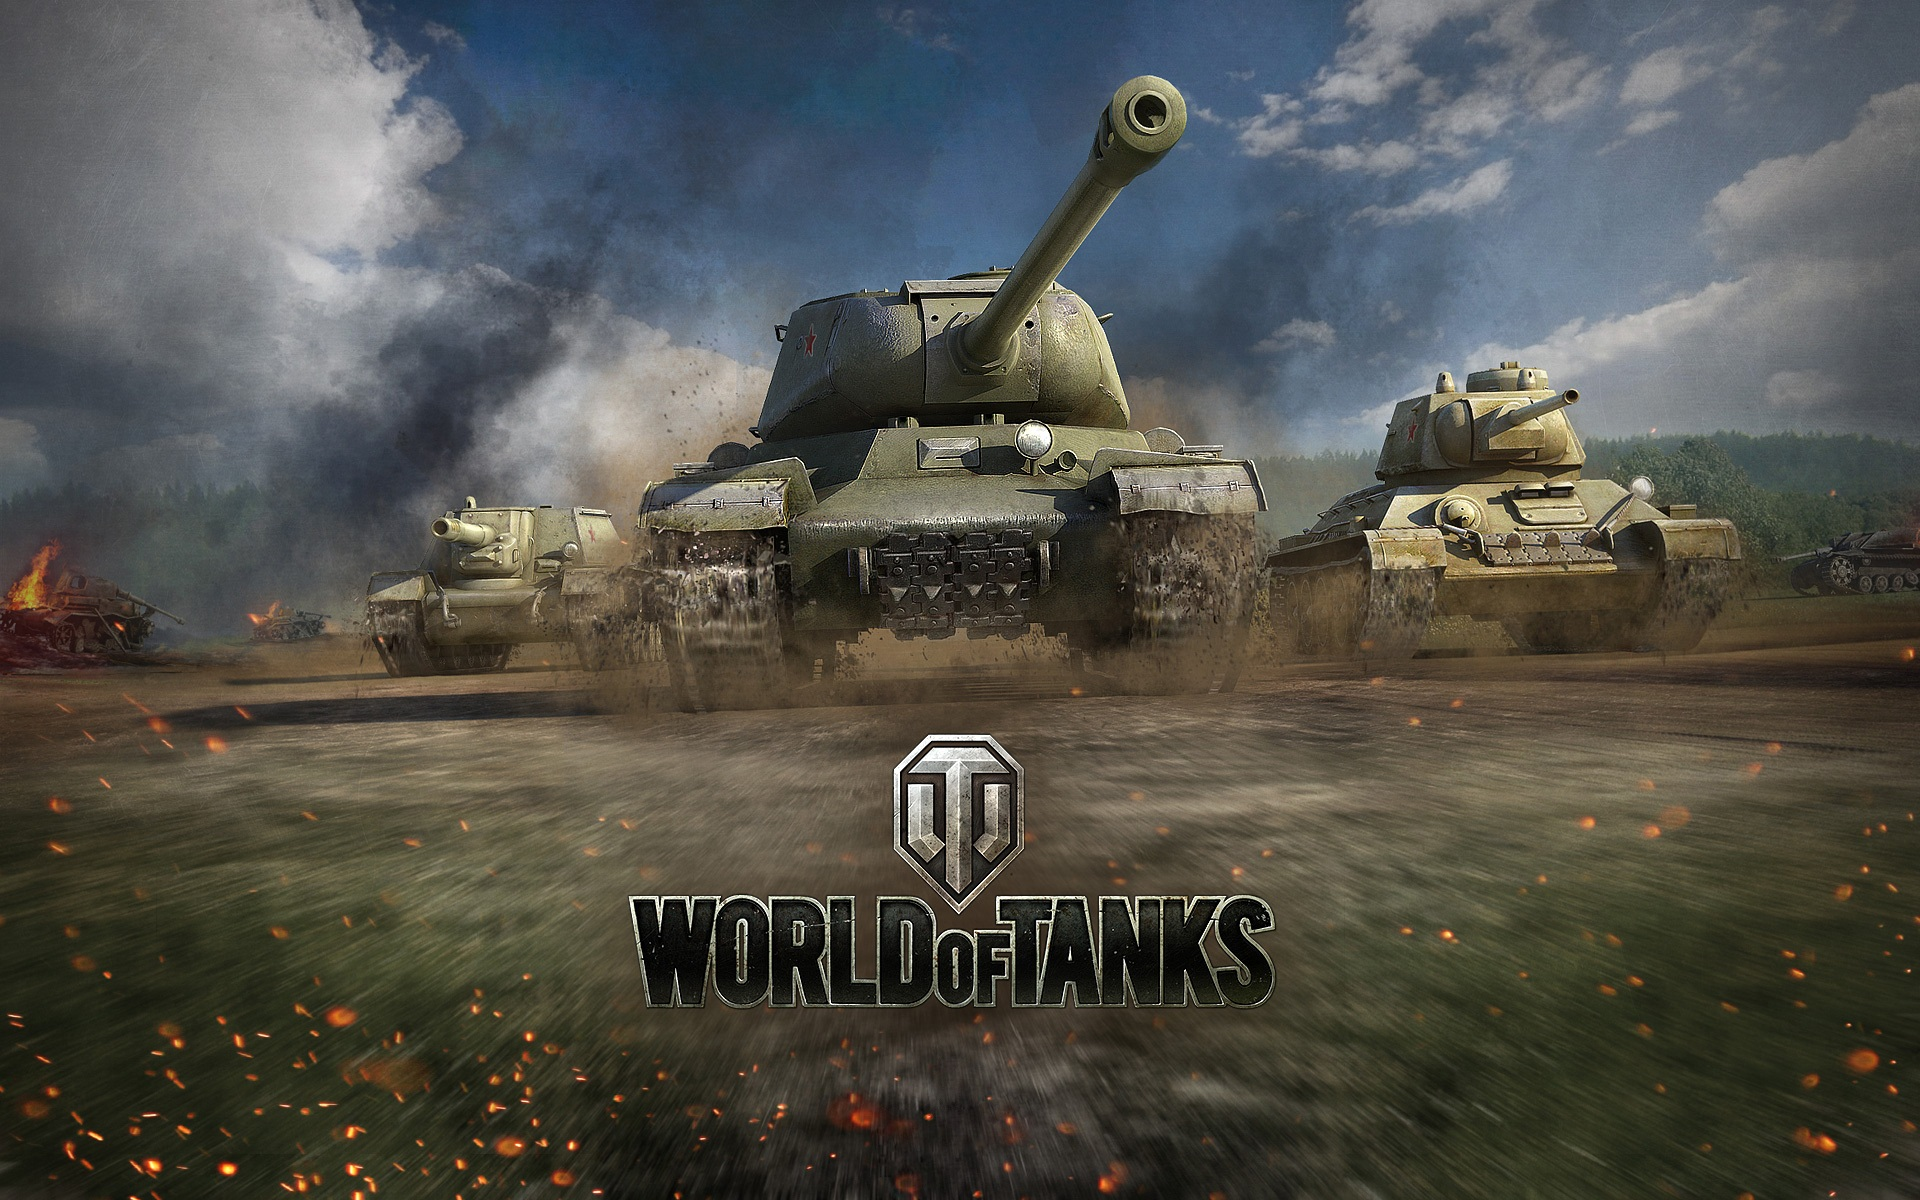 Системные требования для world of tanks на ноутбуке